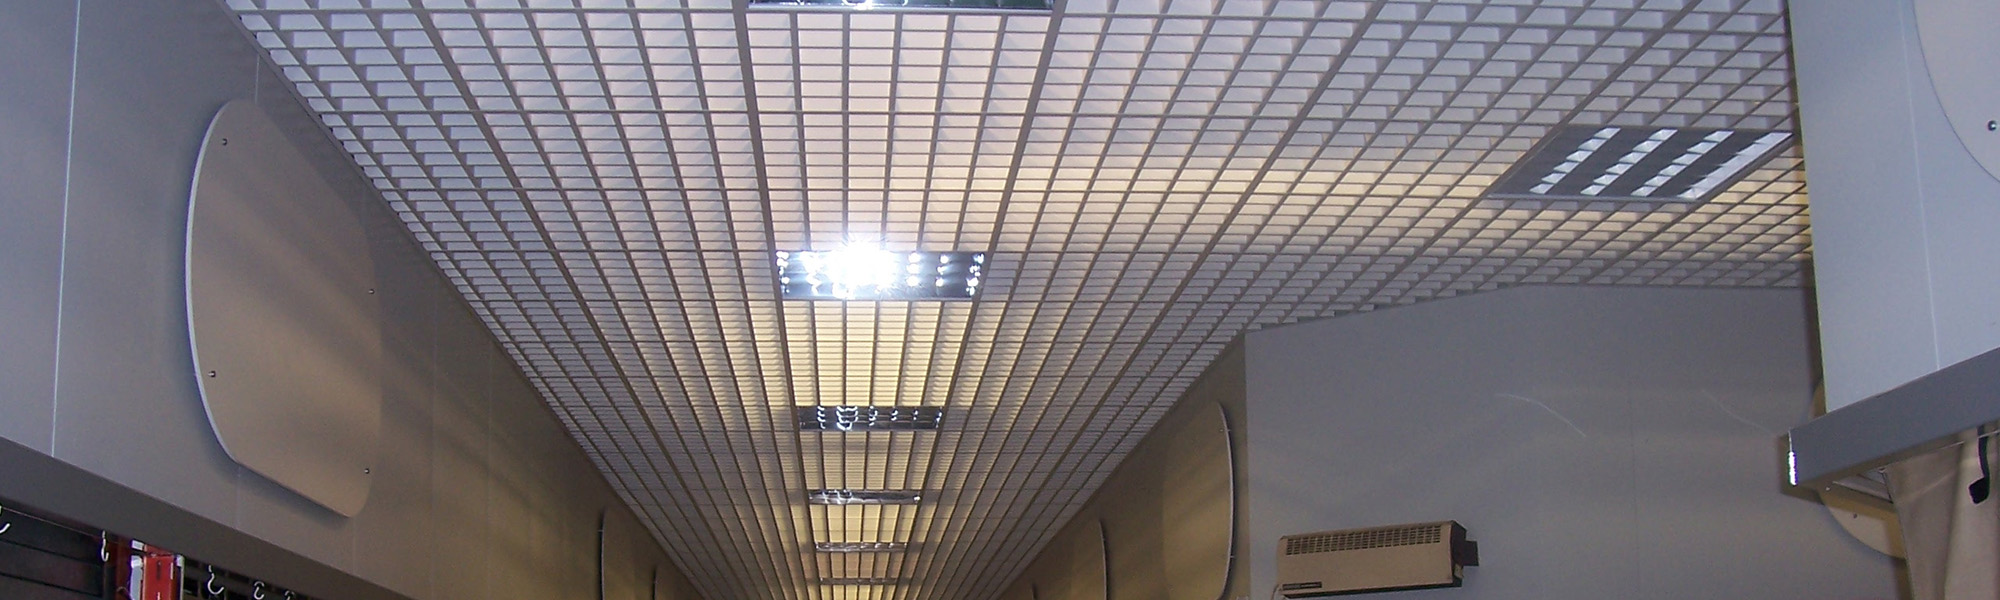 Suspended Ceilings, MF & Open Cell Ceilings – Arrow Ceilings Ltd